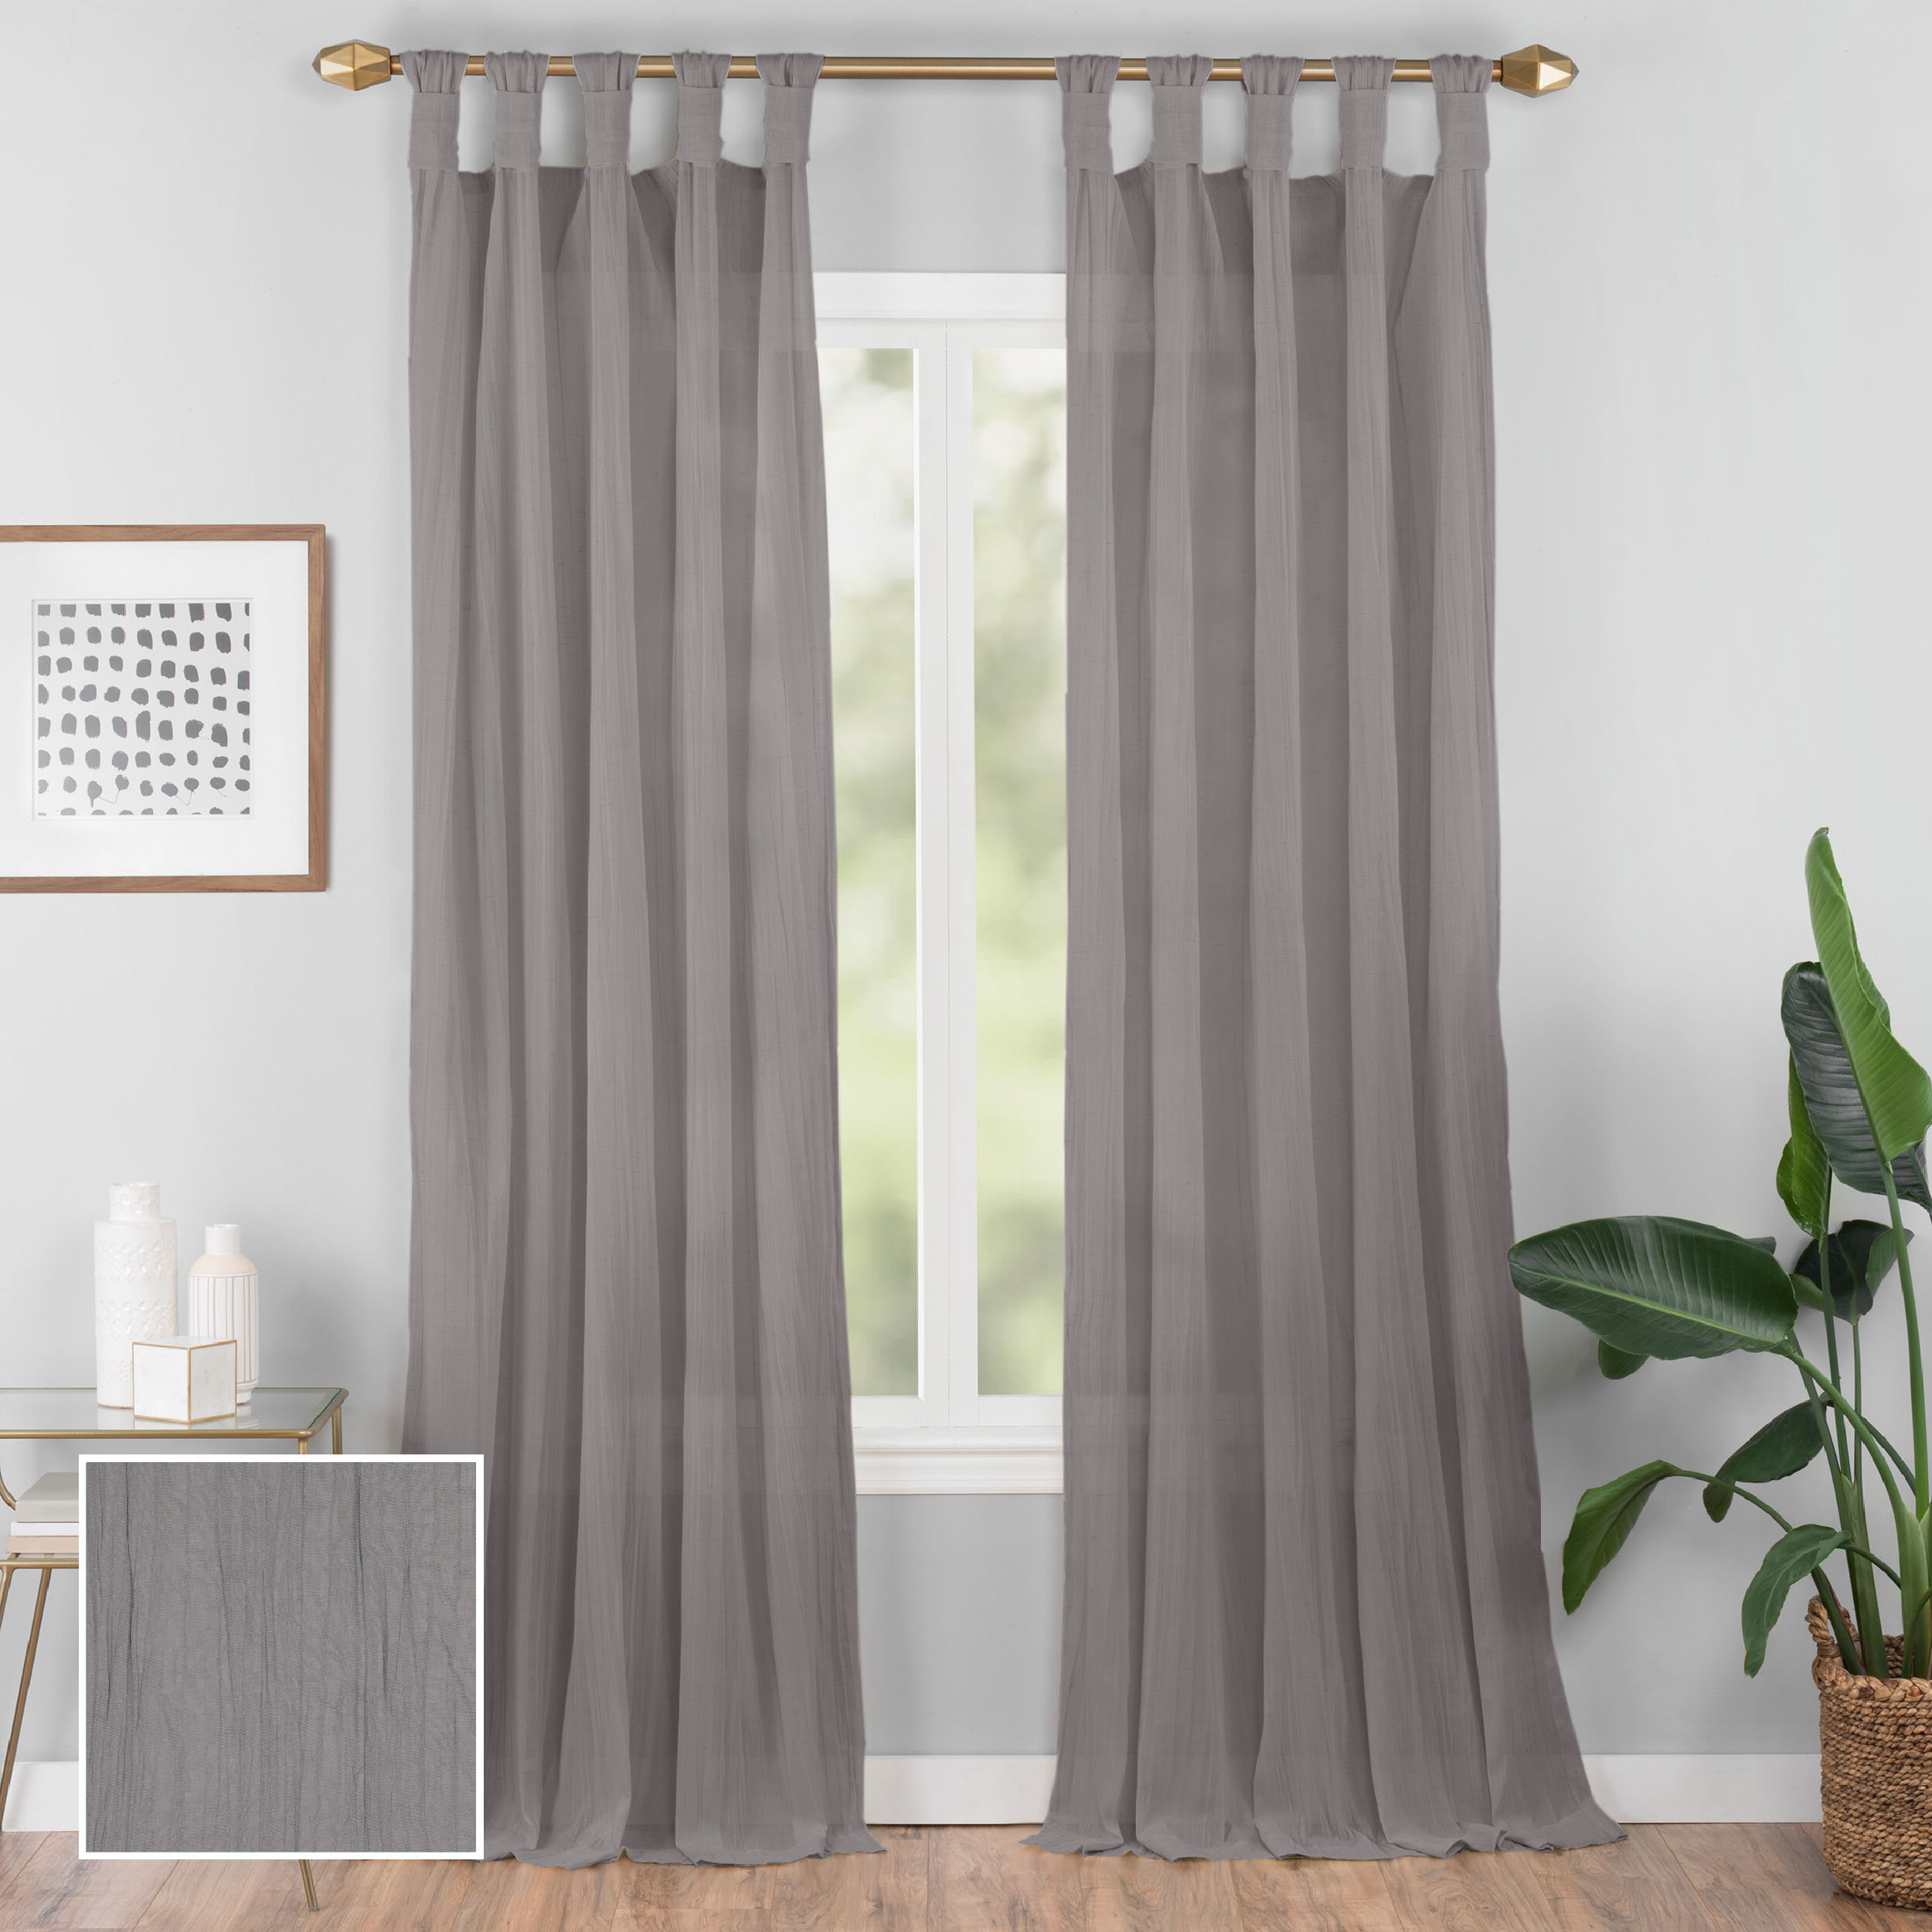 Preferred Connors Solid Semi Sheer Tab Top Single Curtain Panel Pertaining To Tab Top Sheer Single Curtain Panels (View 4 of 20)